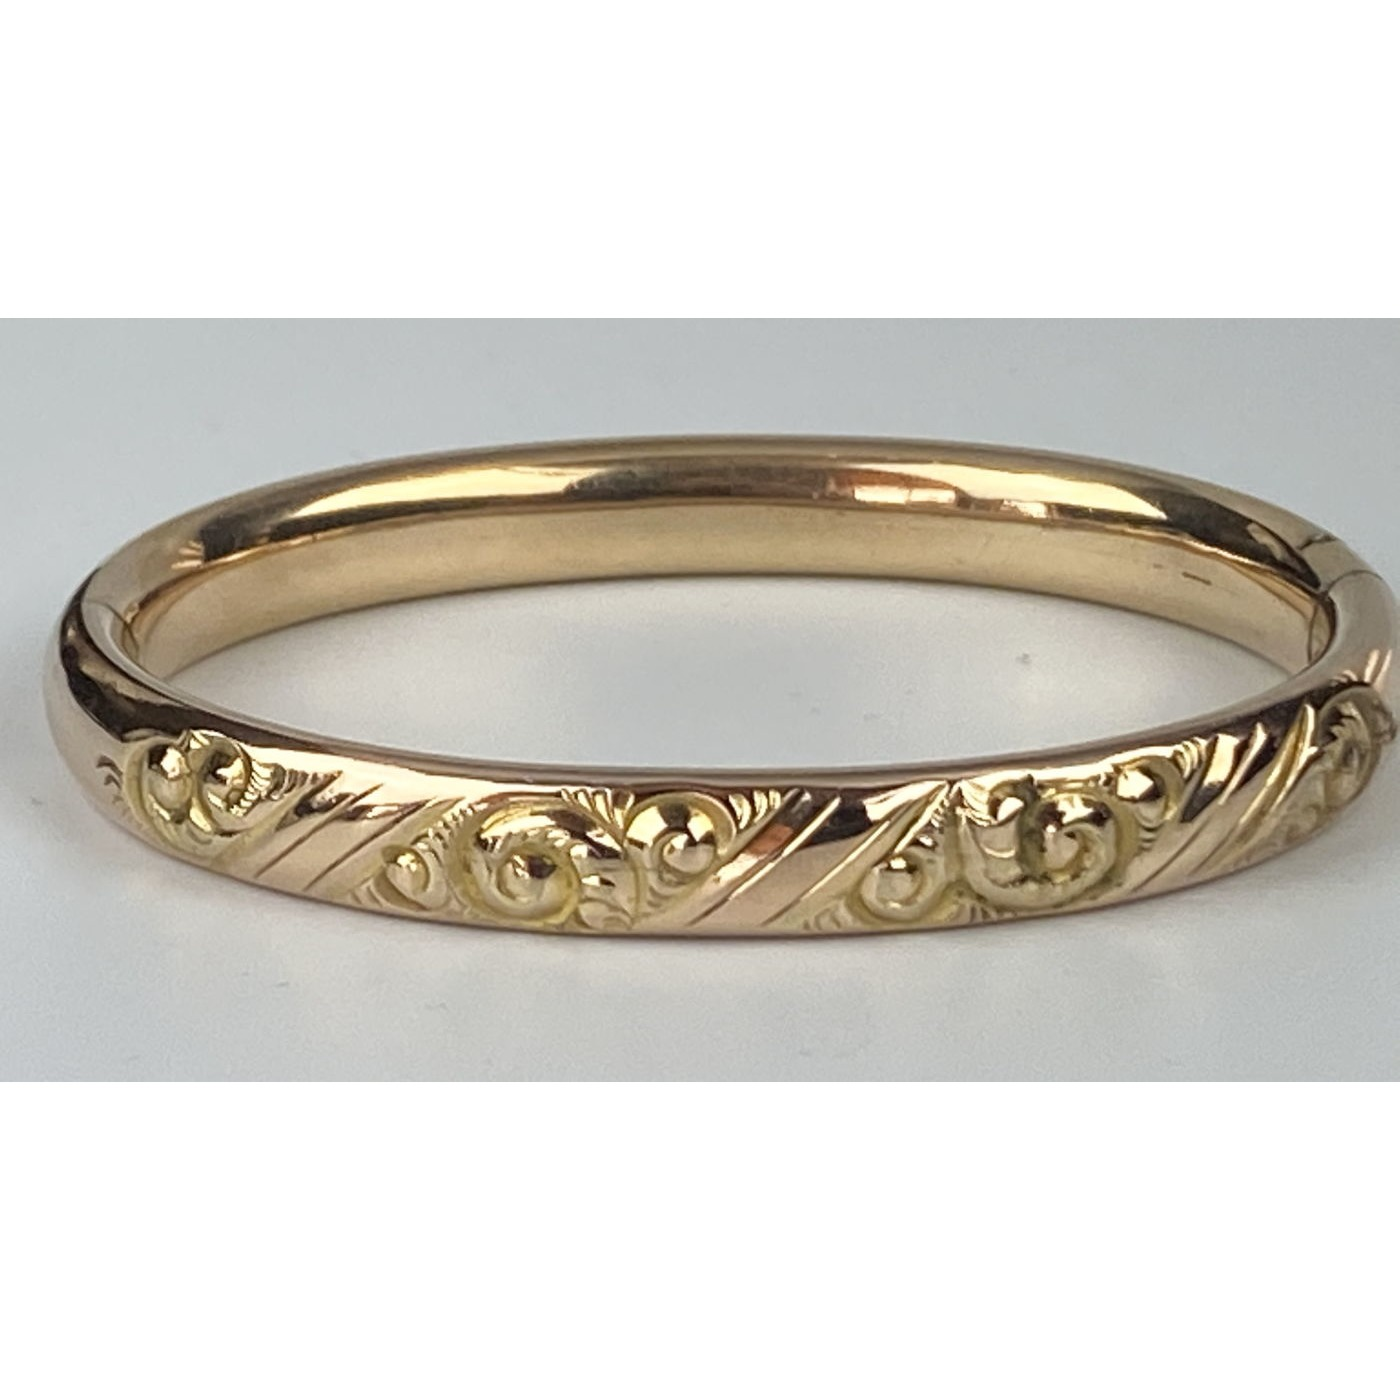 Much Smaller-Than-Usual Deeply Engraved Engagement Bangle